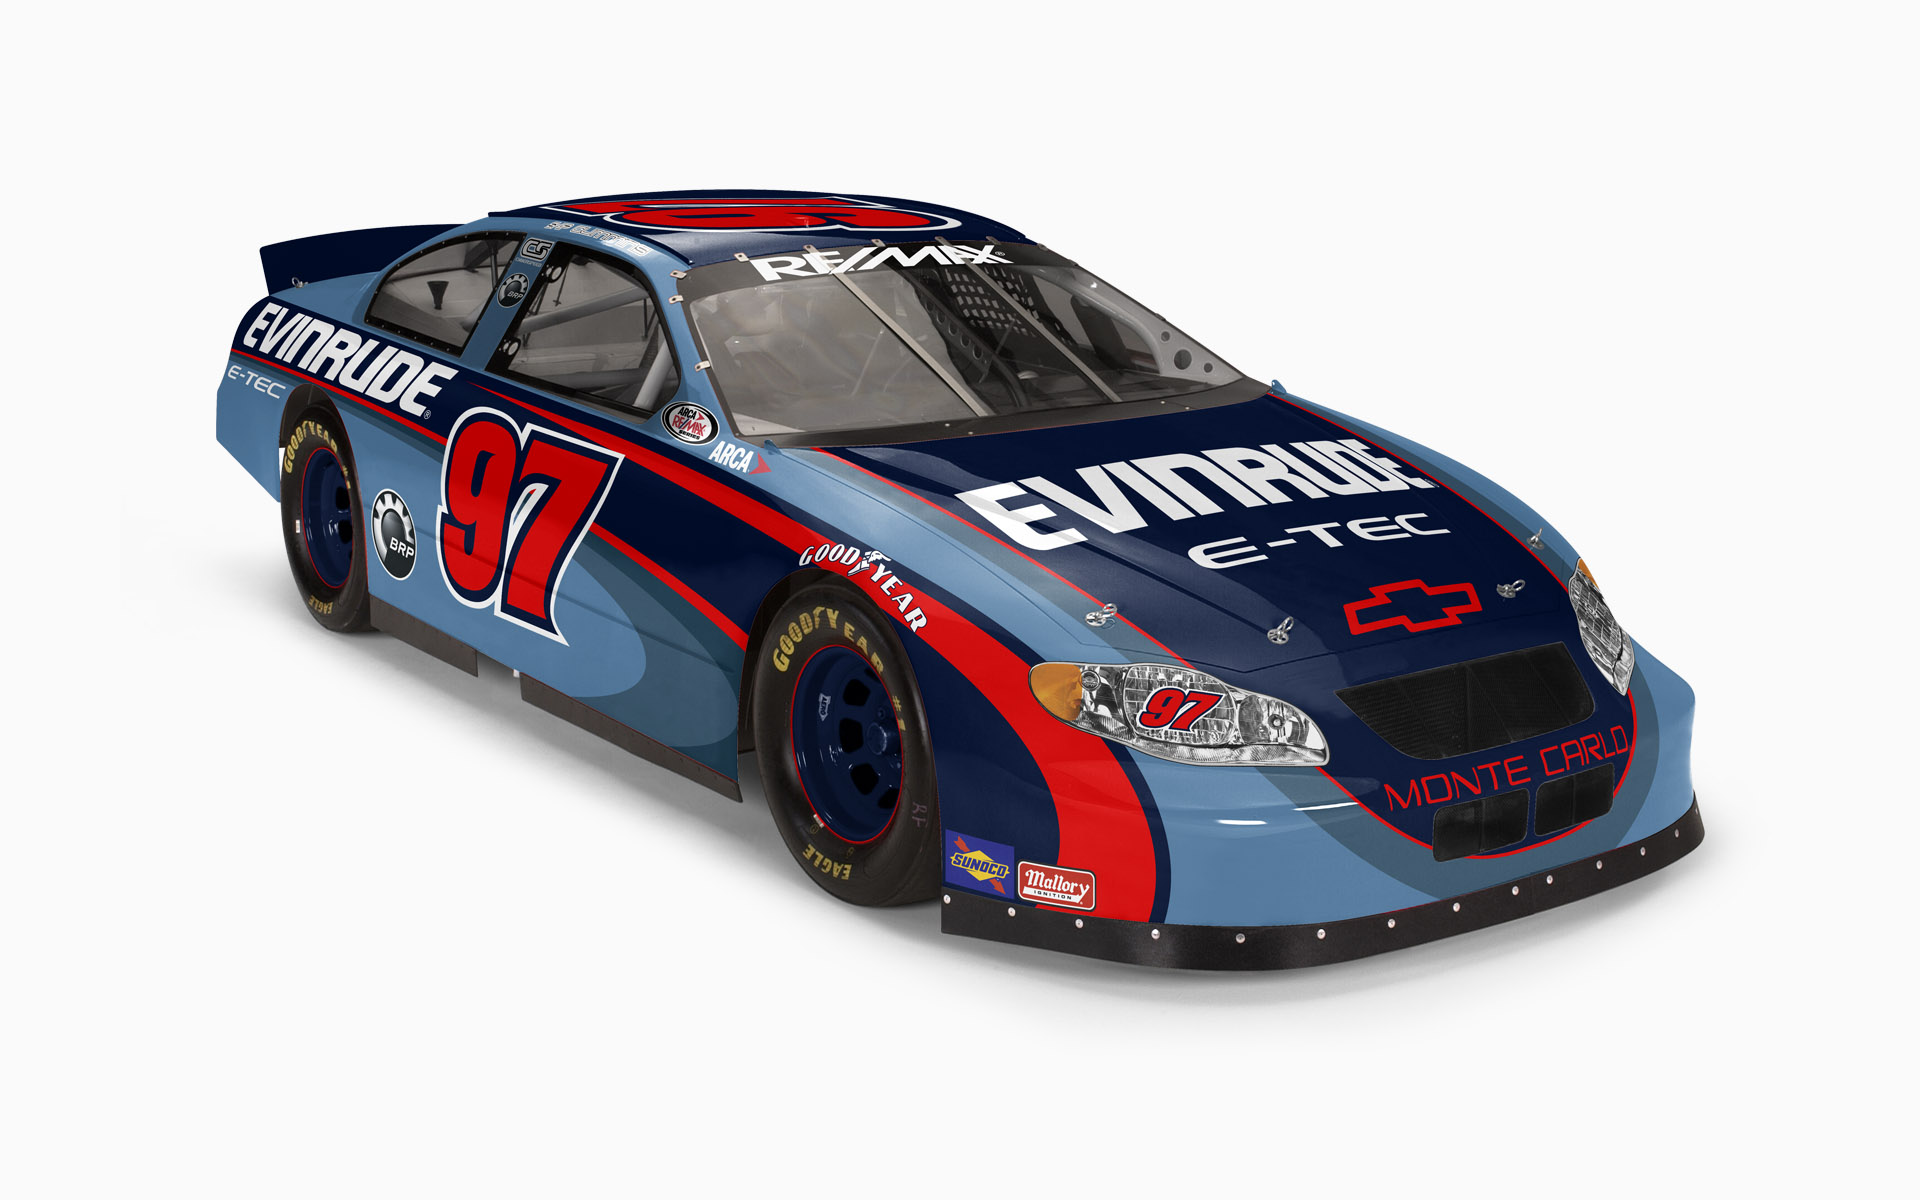 Cyberspeed Racing BRP Evinrude Chevy Monte Carlo ARCA Livery Visualization